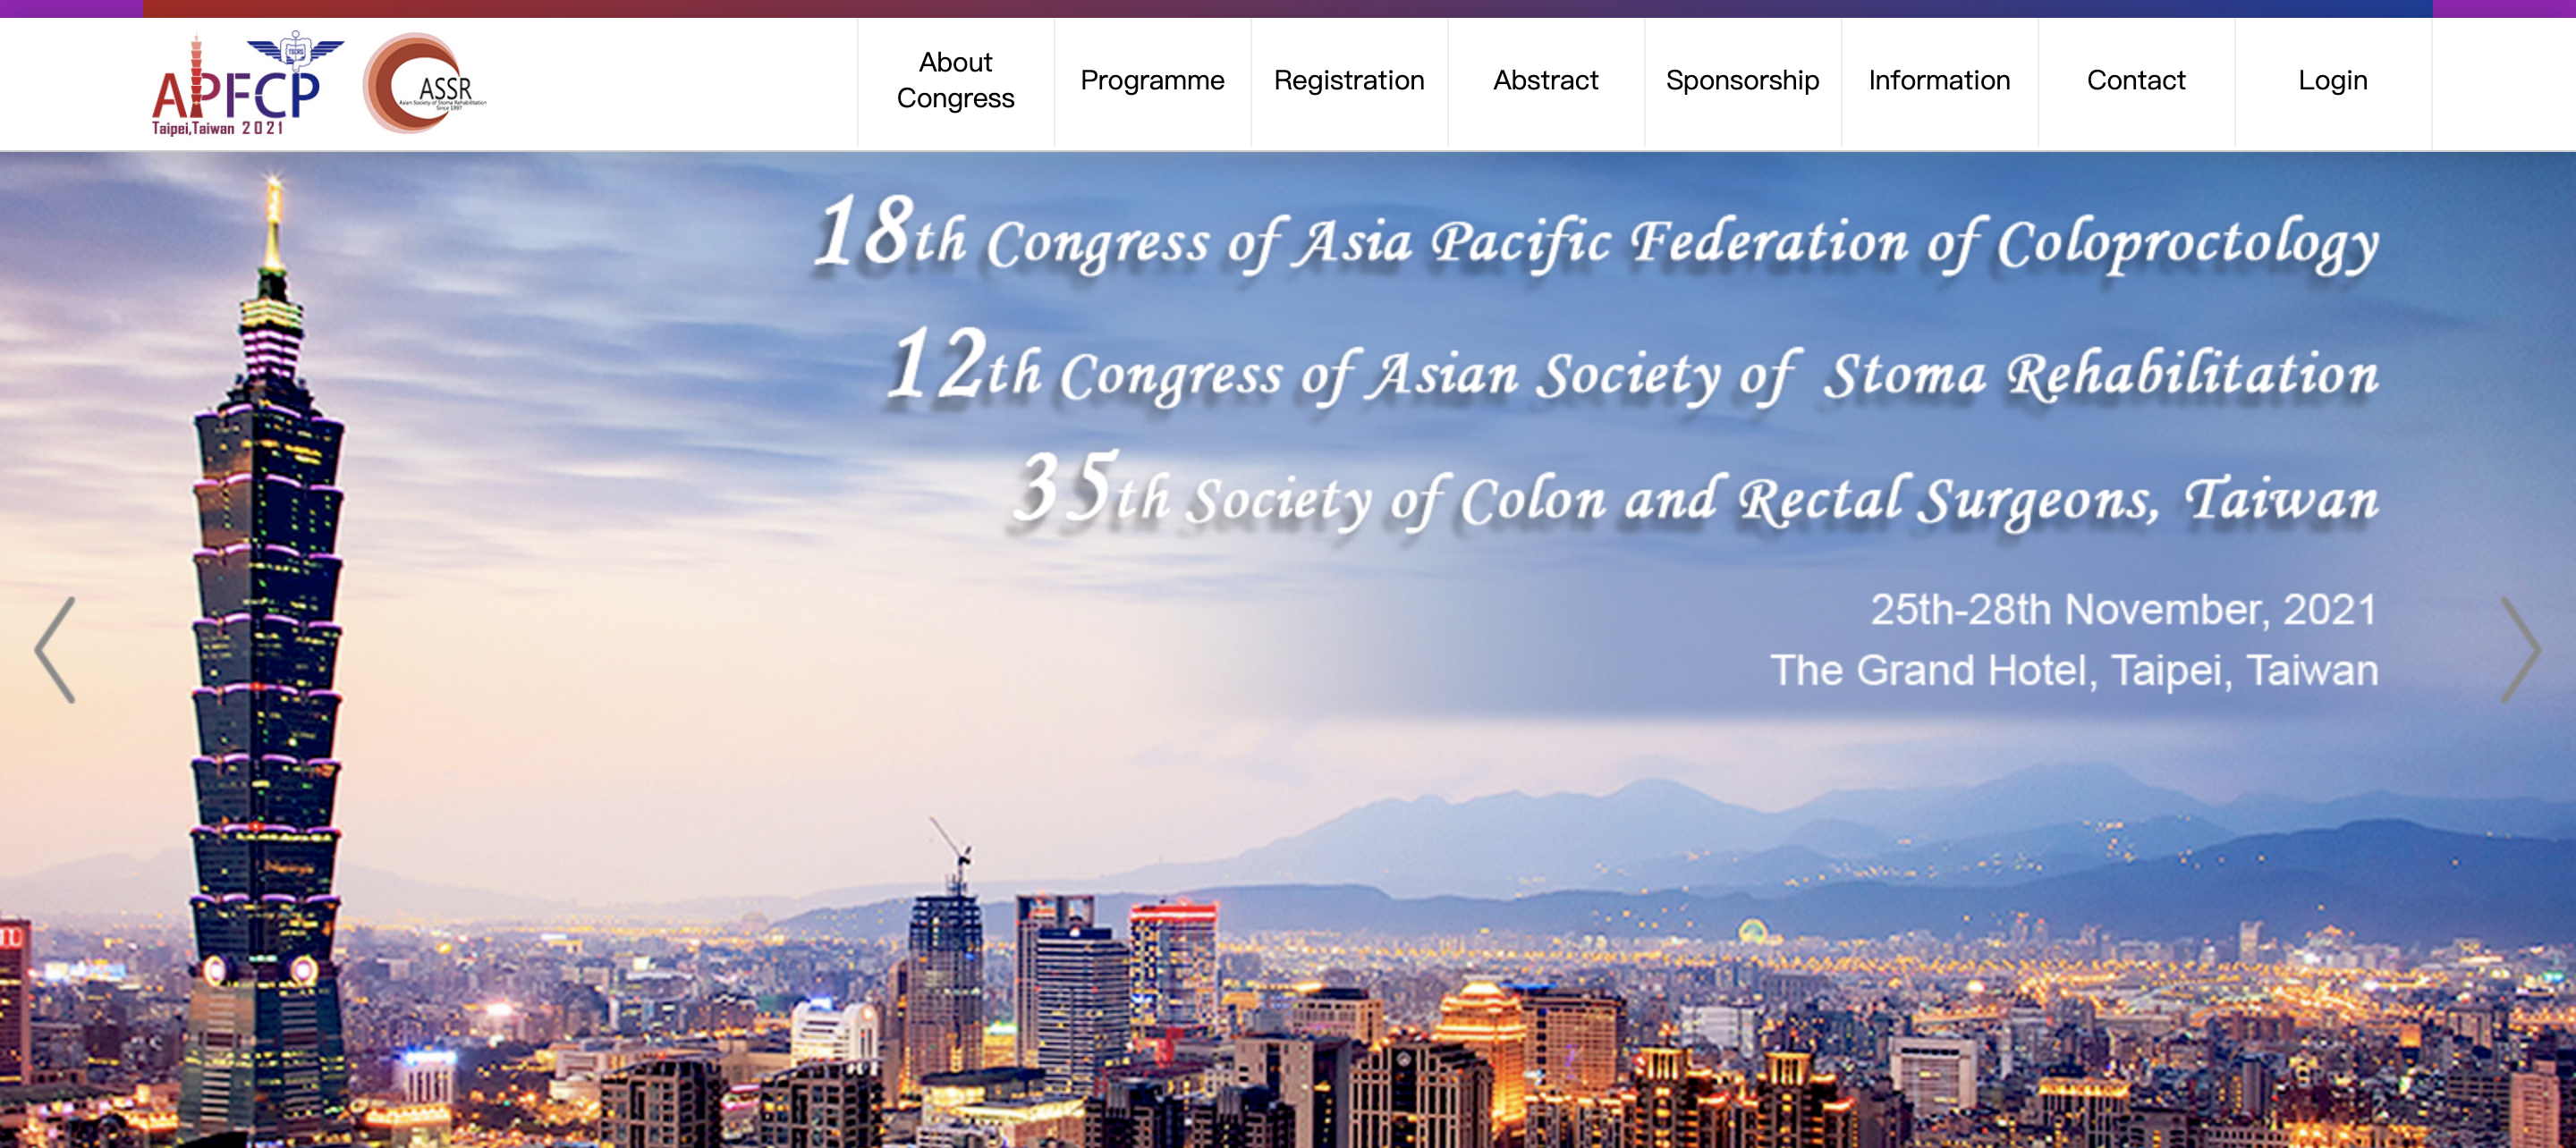 APFCP Asia – Pacific Federation of Coloproctology